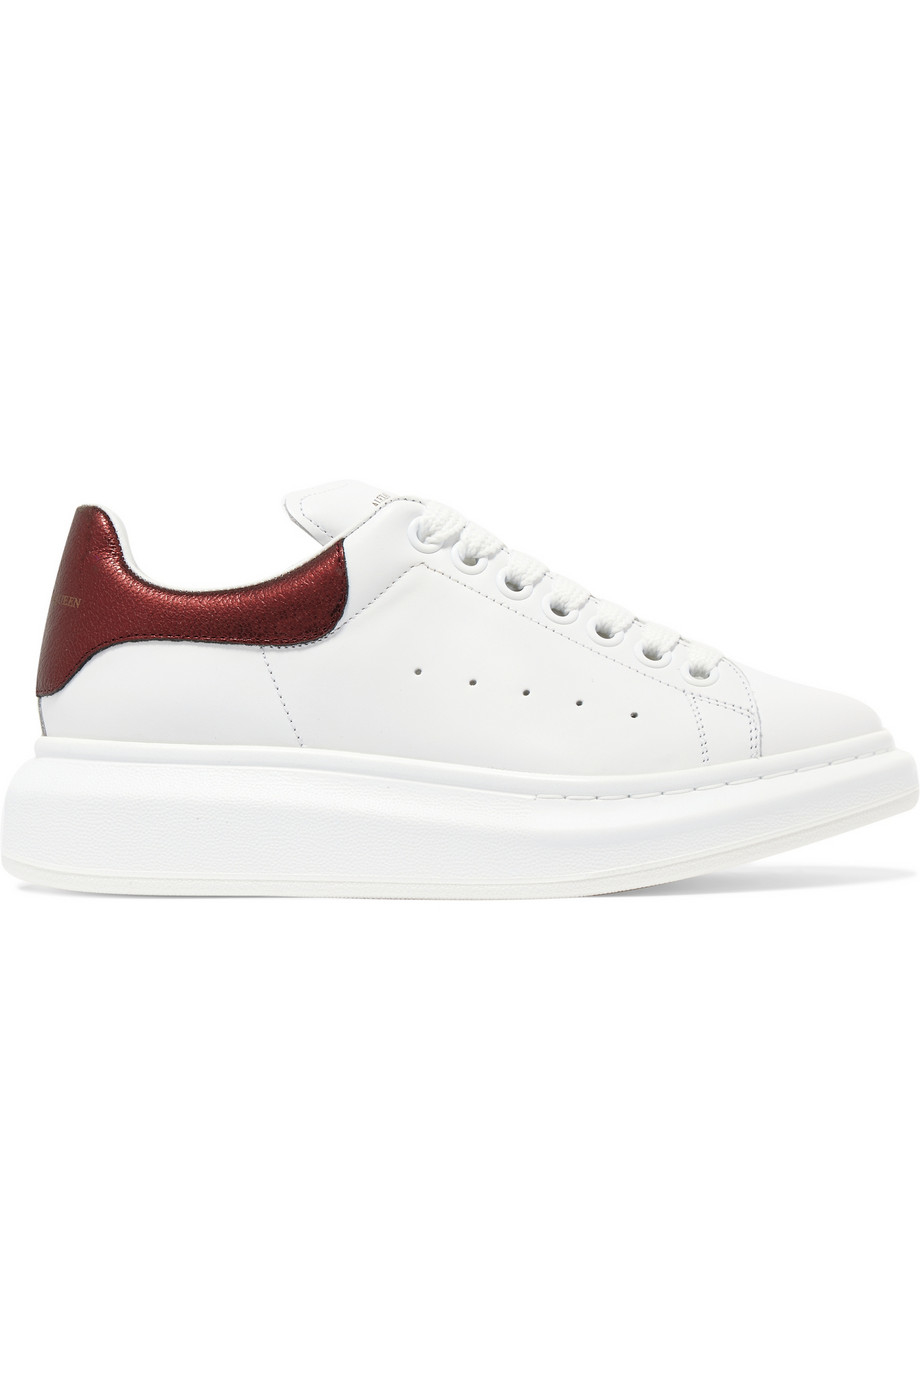 mcqueen metallic trimmed leather exaggerated